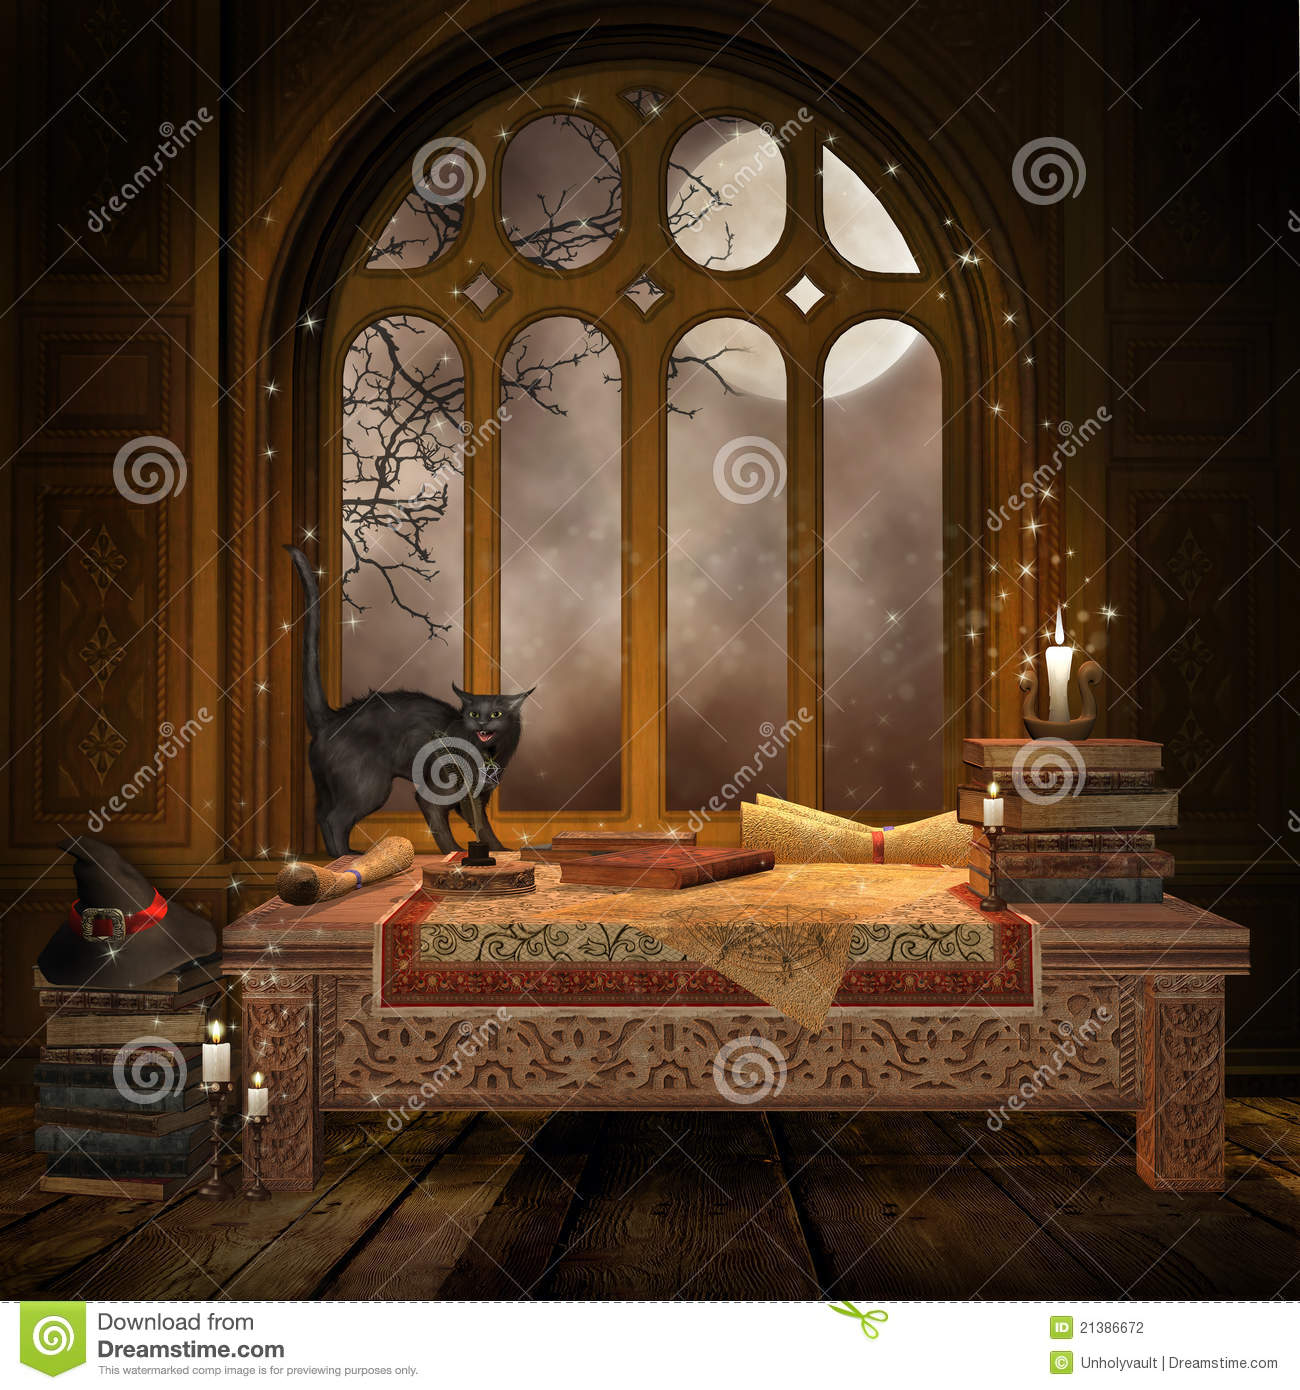 Fantasy Desk With Books And Scrolls Stock Illustration